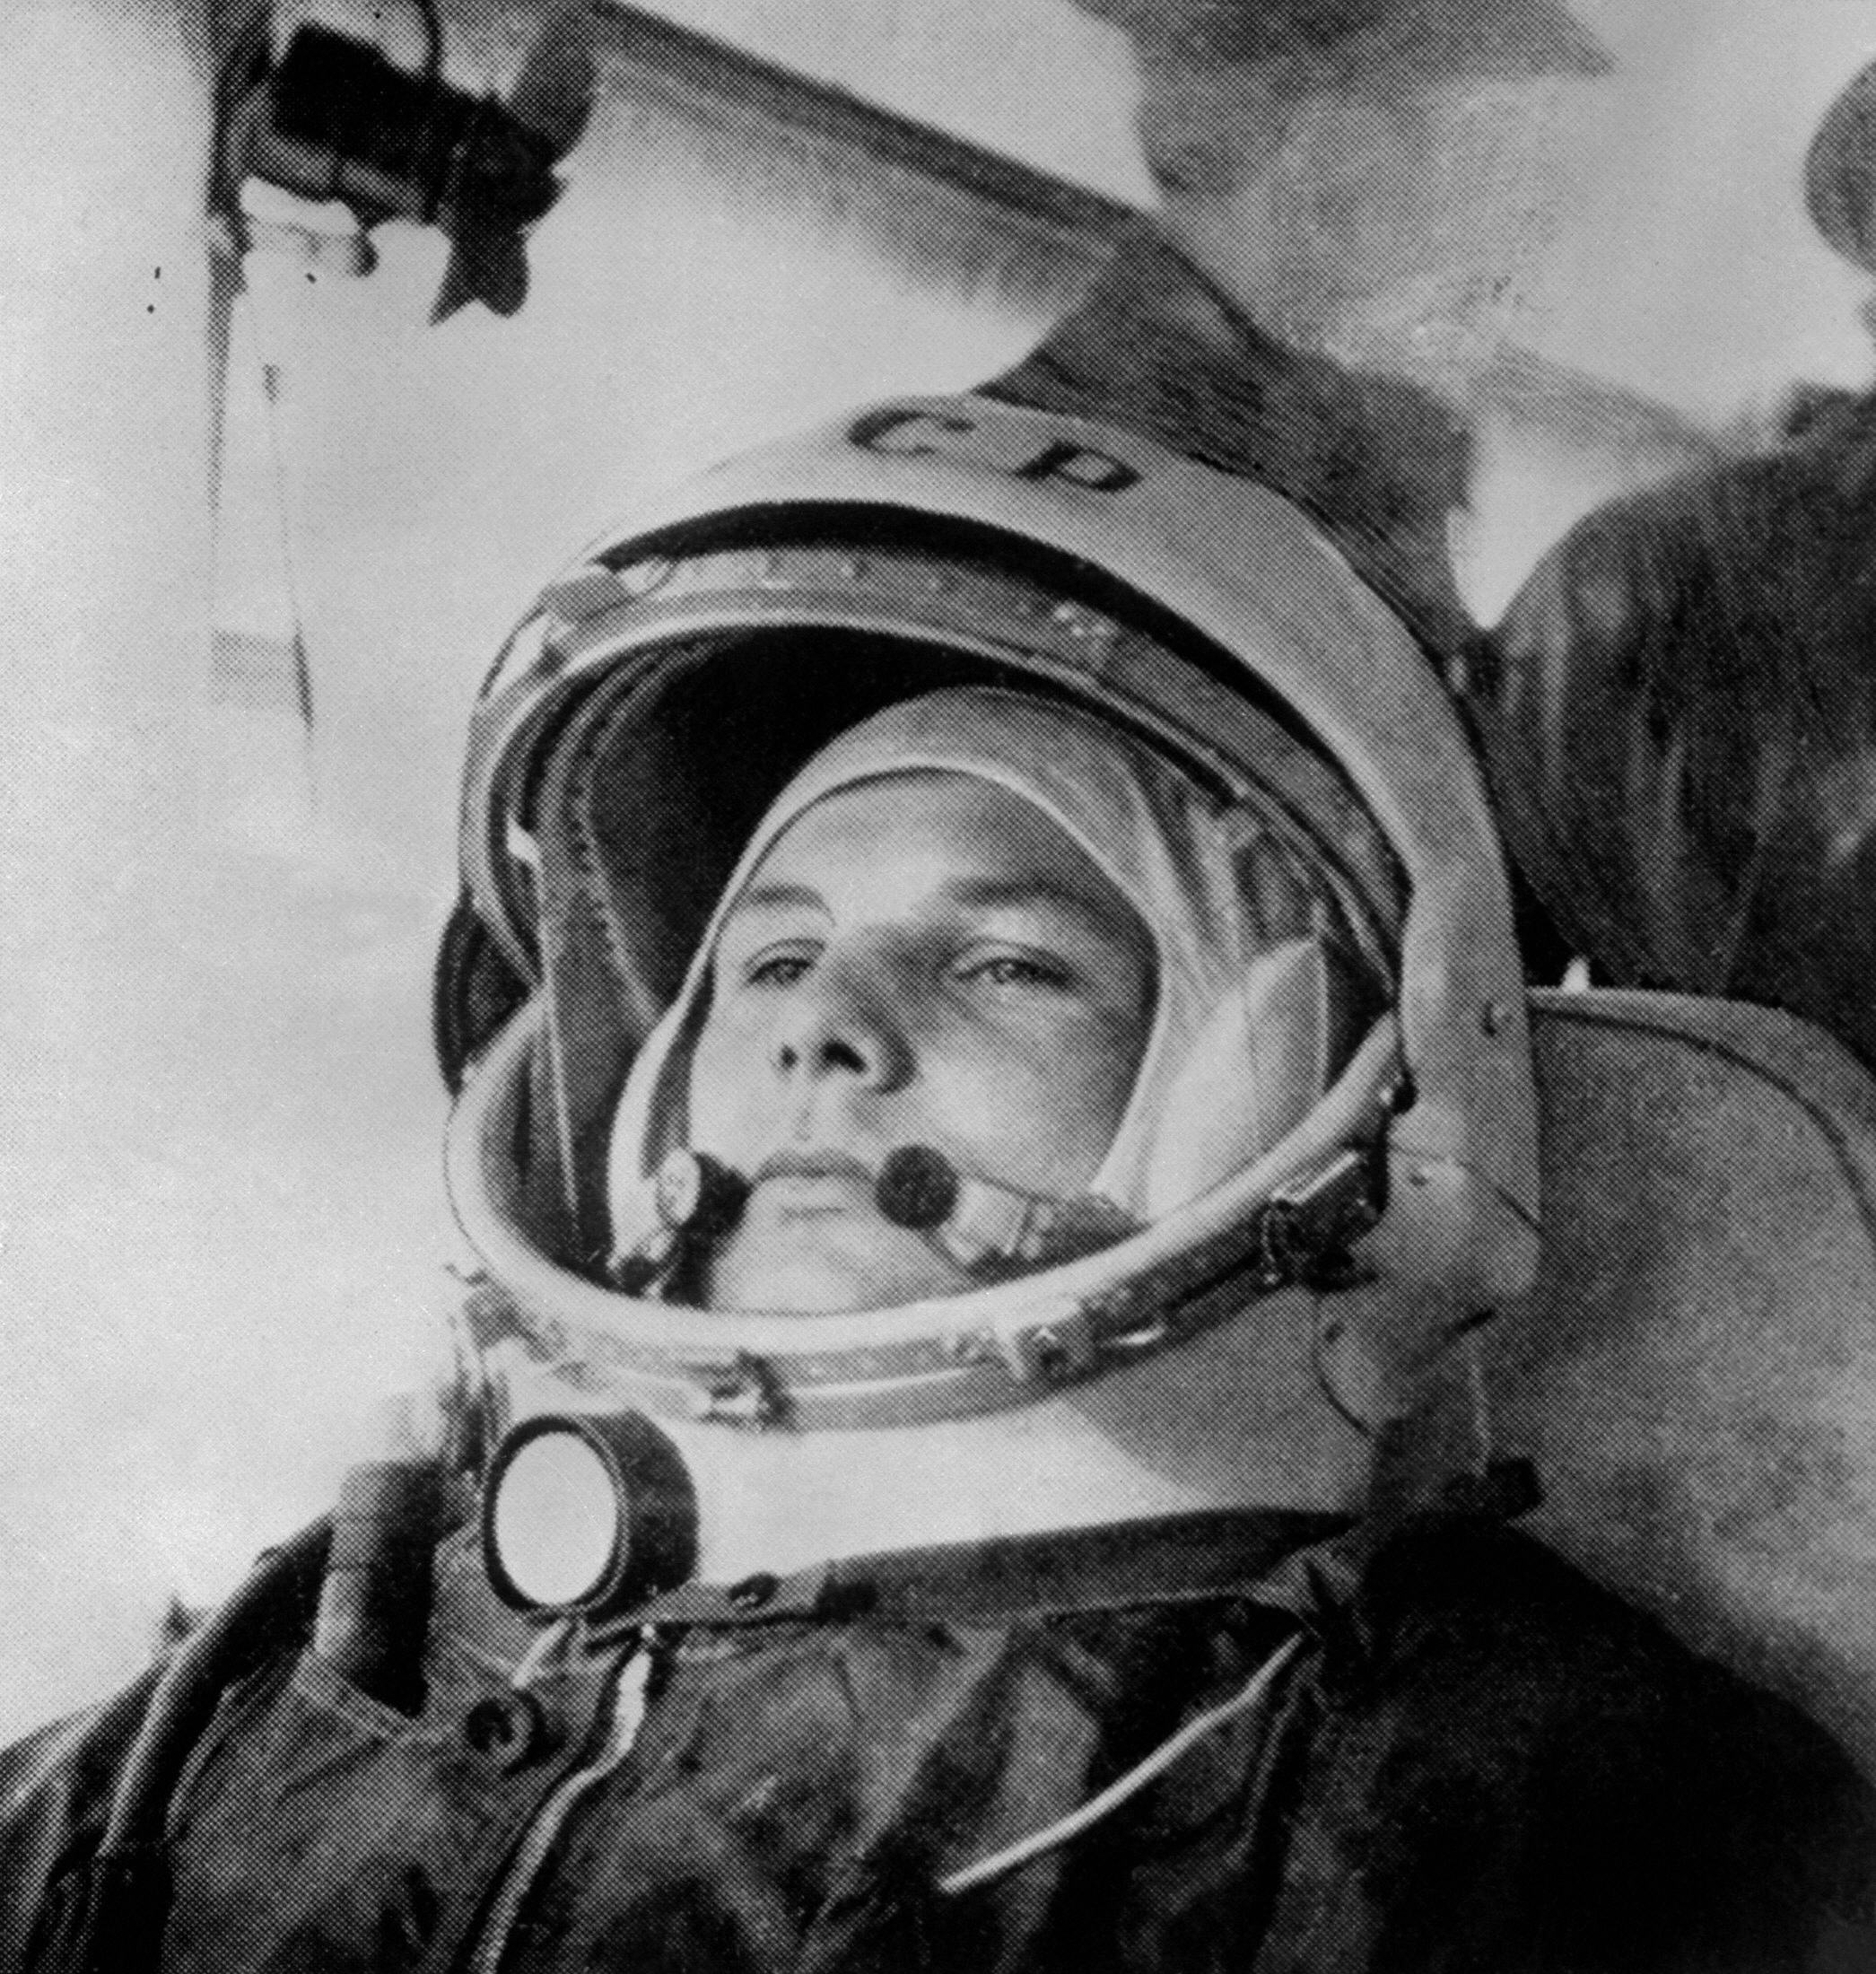 """(FILES) This file photo dated 12 April 1961 shows Yuri Gagarin at the age of 27 before boarding a Soviet Vostok I spaceship at the Baikonur rockets launch pad shortly before becoming the first man to travel in space. A court met 07 September 2007 in Moscow in a case brought by Gagarin's two daughters who are suing Moscow-based film company Central Partnership, for allegedly misusing Gagarin's name and misrepresenting his life in the tragi-comic feature film """"Gagarin's Grandson,"""" the company said. The film deals only tangentially with Gagarin, who died in 1968 and has had near saint-like status in Russia since his 1961 space flight. AFP PHOTO / STR (Photo credit should read -/AFP/Getty Images)"""